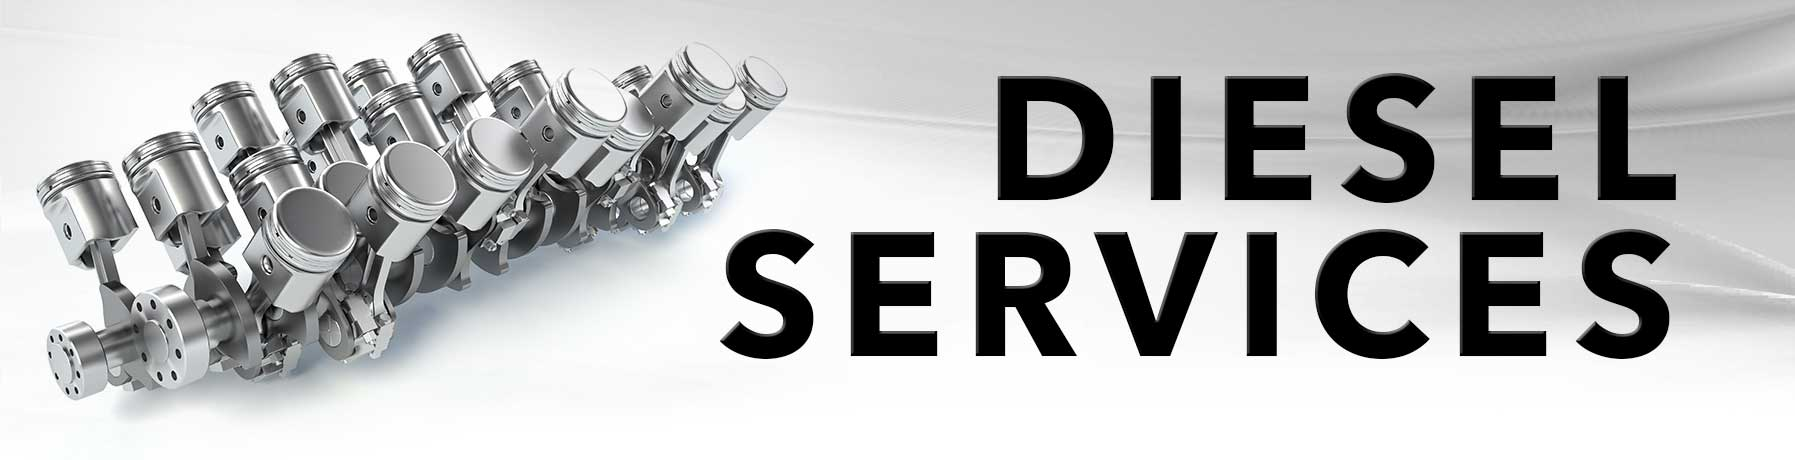 Diesel Service banner image with picture of diesel engine